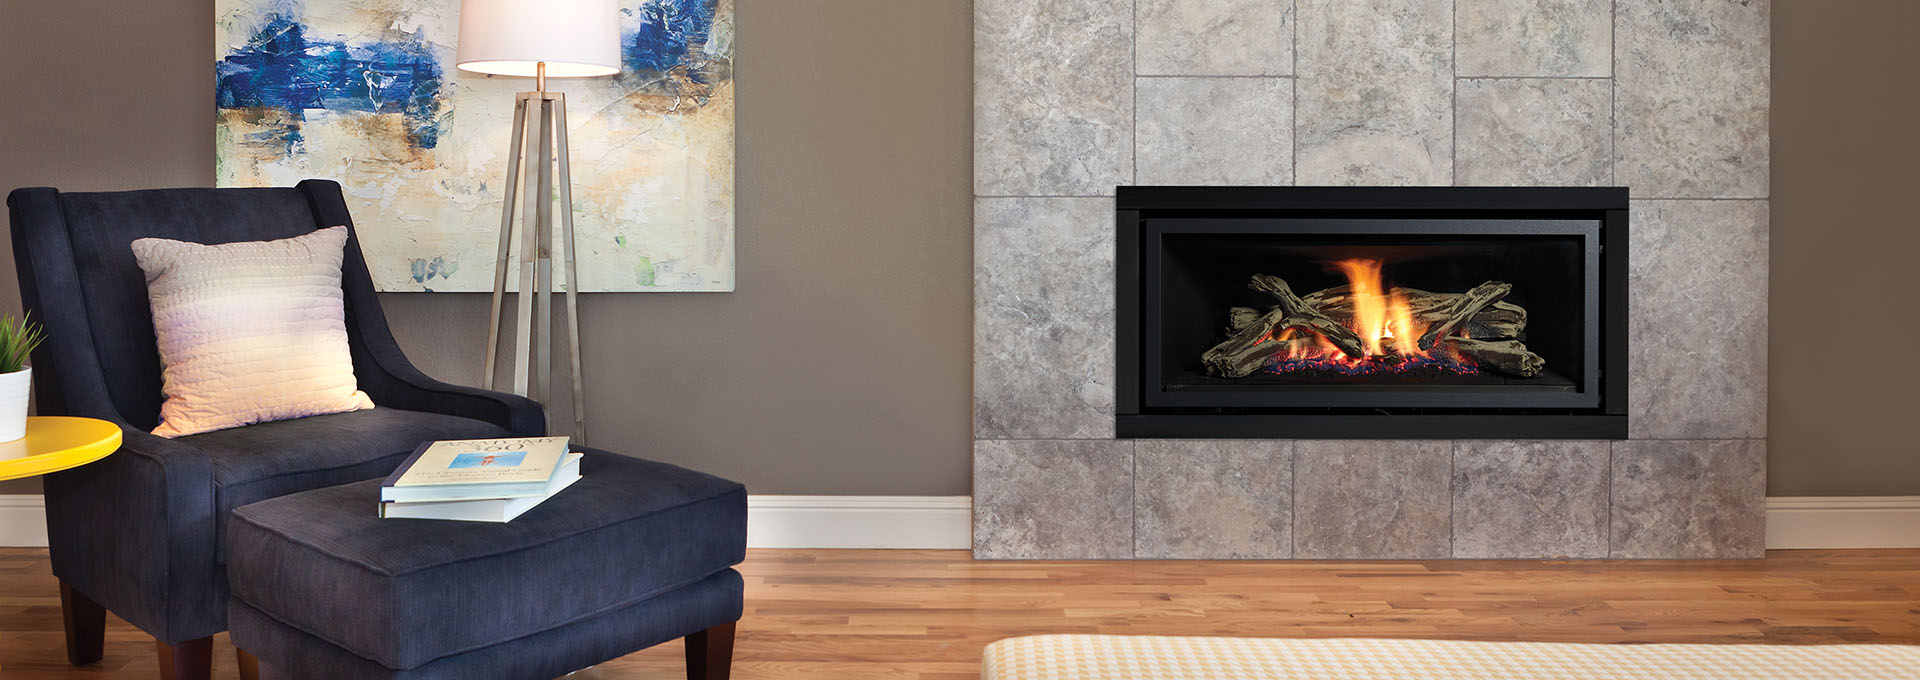 Regency ultimate u900e gas fireplace toronto best price for Modern gas fireplace price